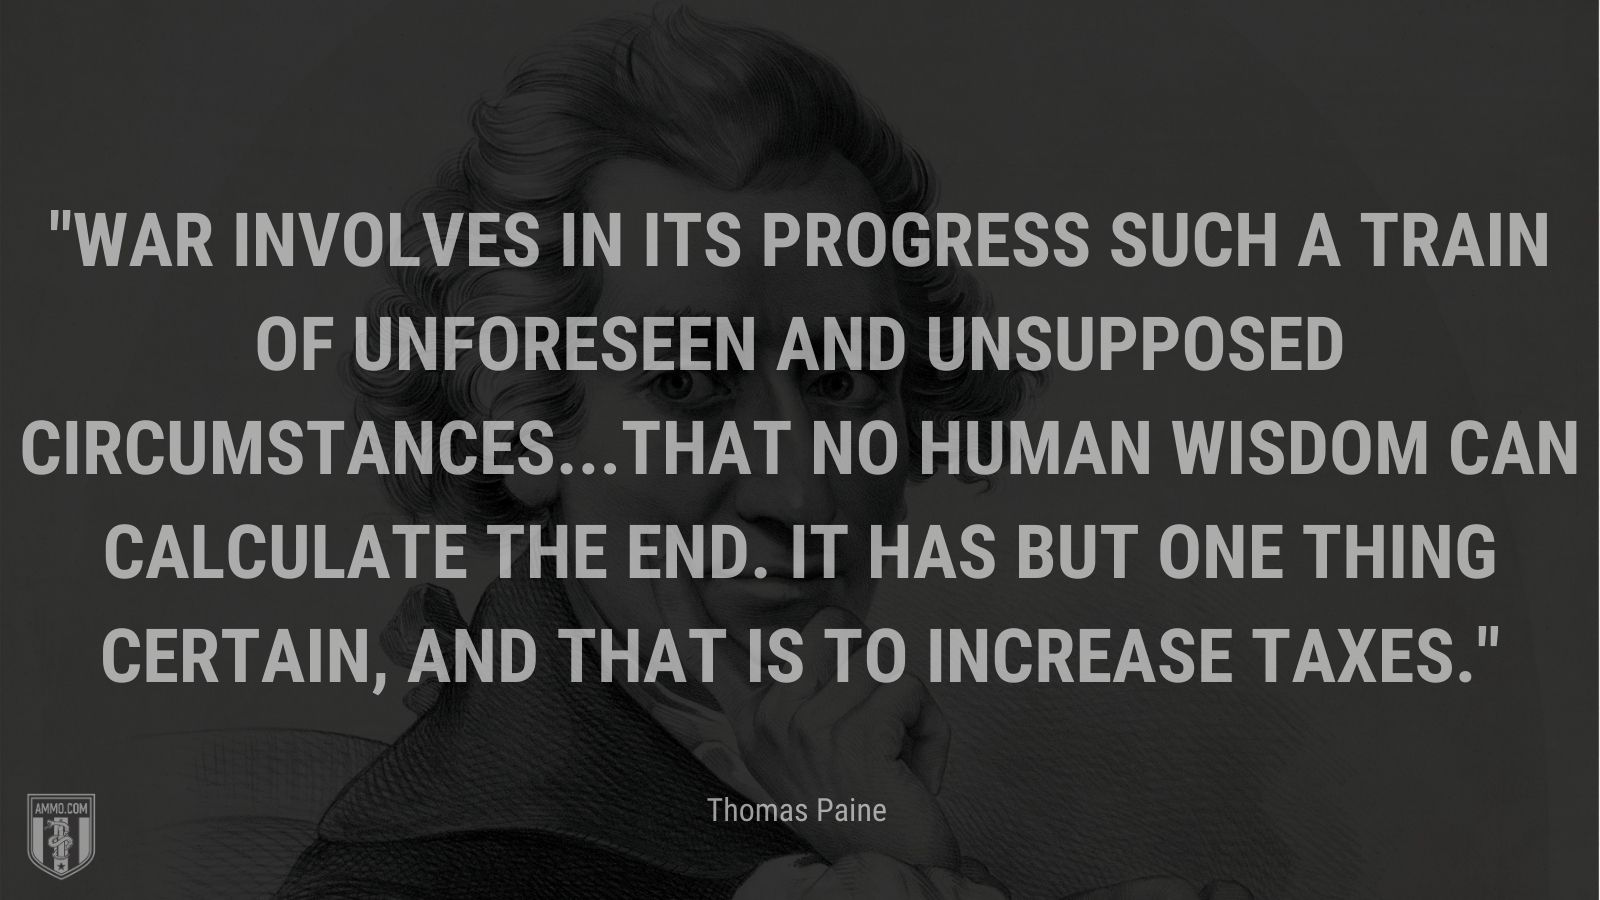 """""""War involves in its progress such a train of unforeseen and unsupposed circumstances...that no human wisdom can calculate the end. It has but one thing certain, and that is to increase taxes."""" - Thomas Paine"""